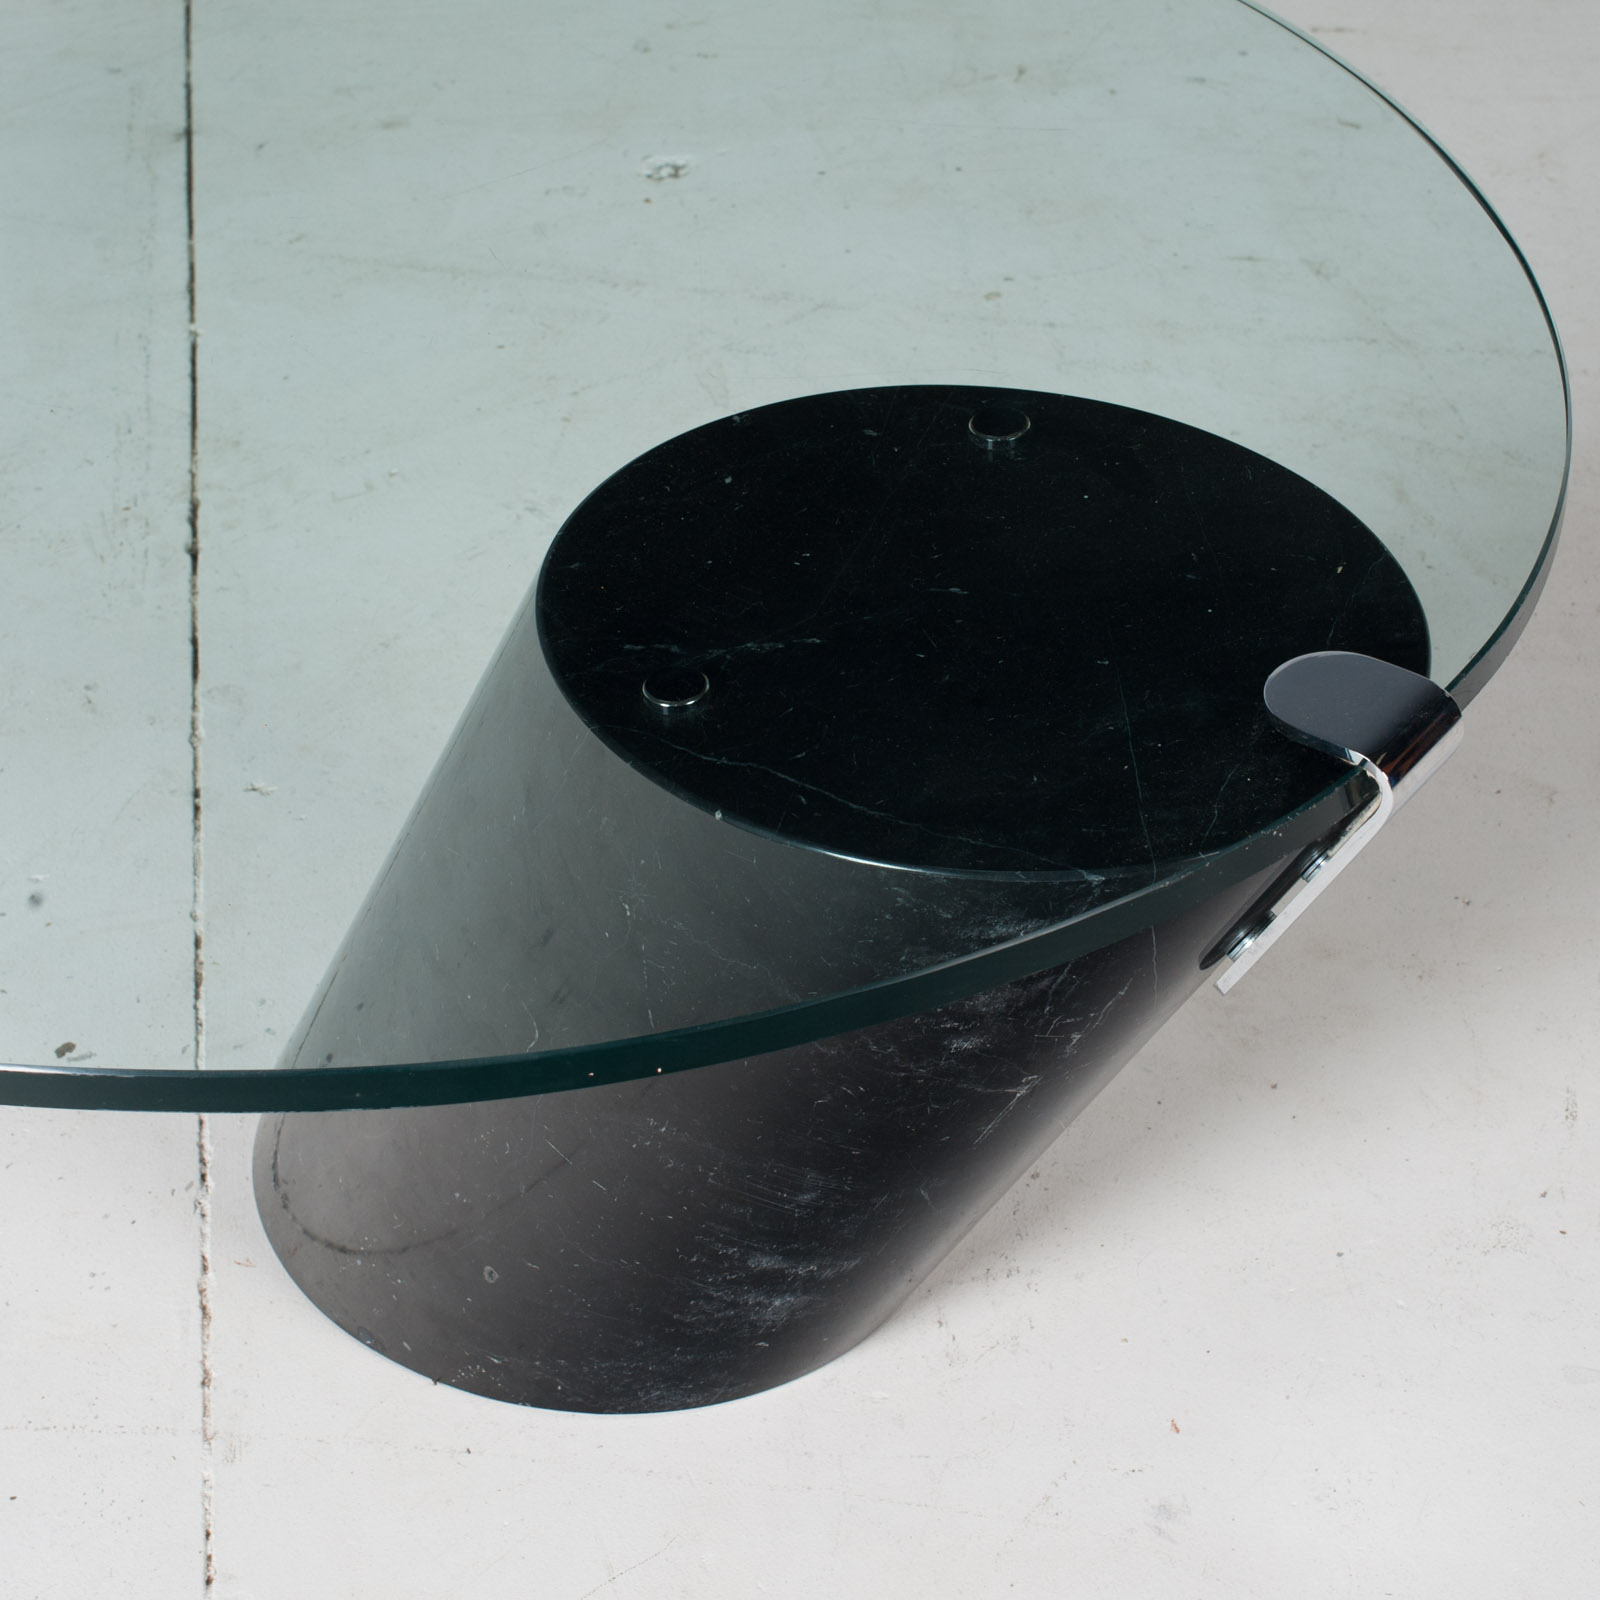 K1000 Oval Coffee Table By Ronald Schmitt In Glass And Black Marble, 1974, Switzerland5